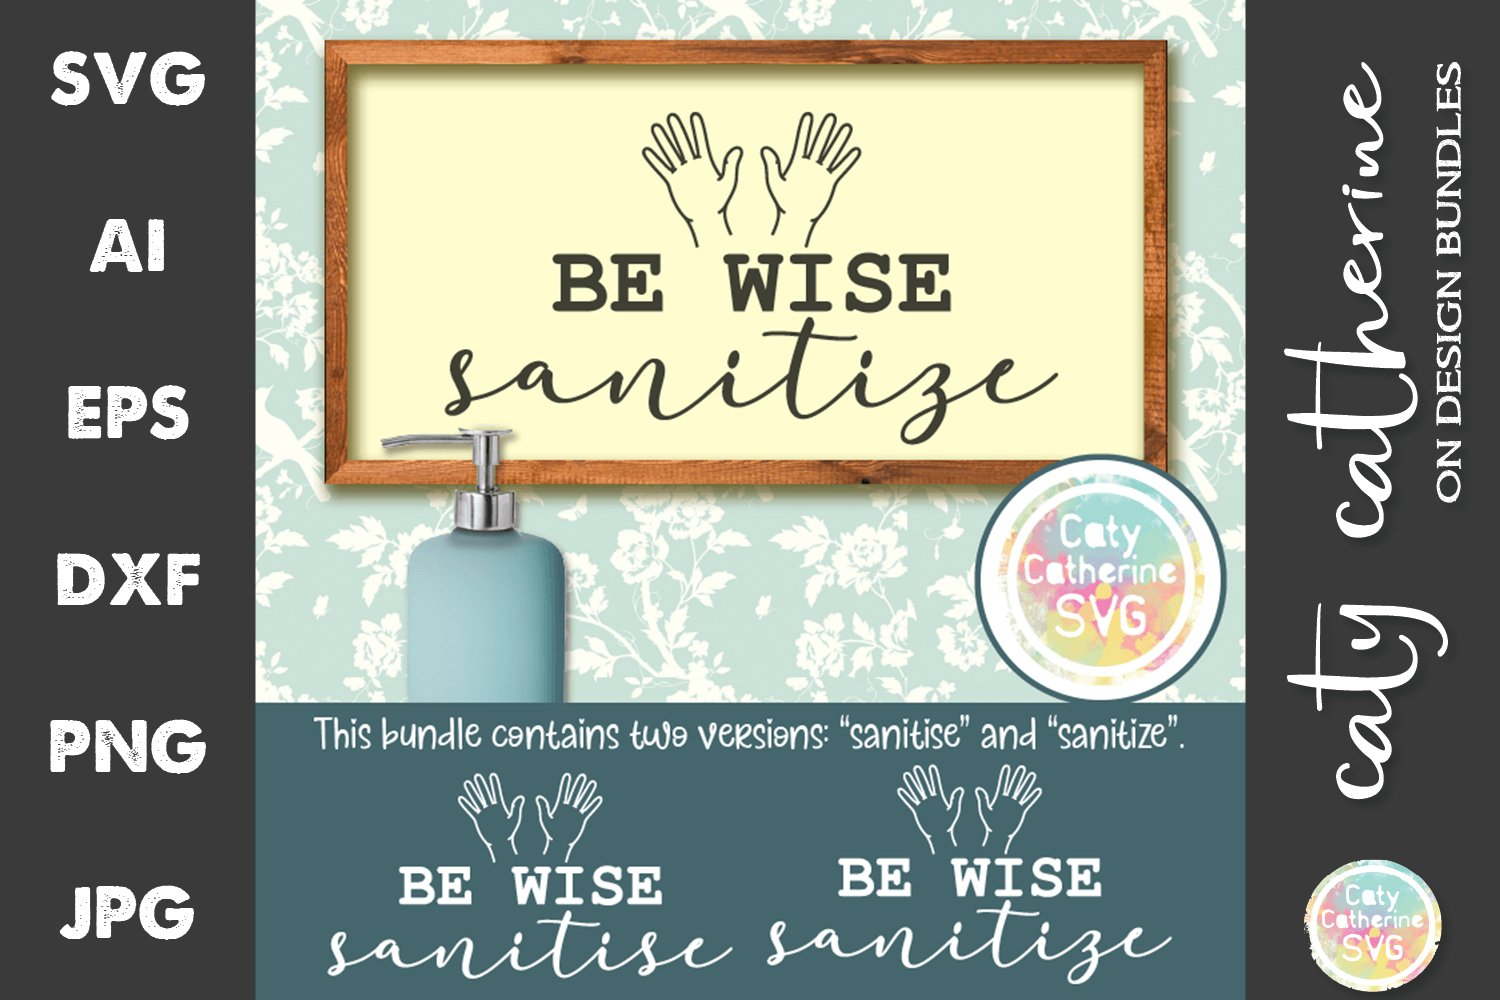 Be Wise Sanitize Sanitise Hands Bundle SVG Cut Files example image 1